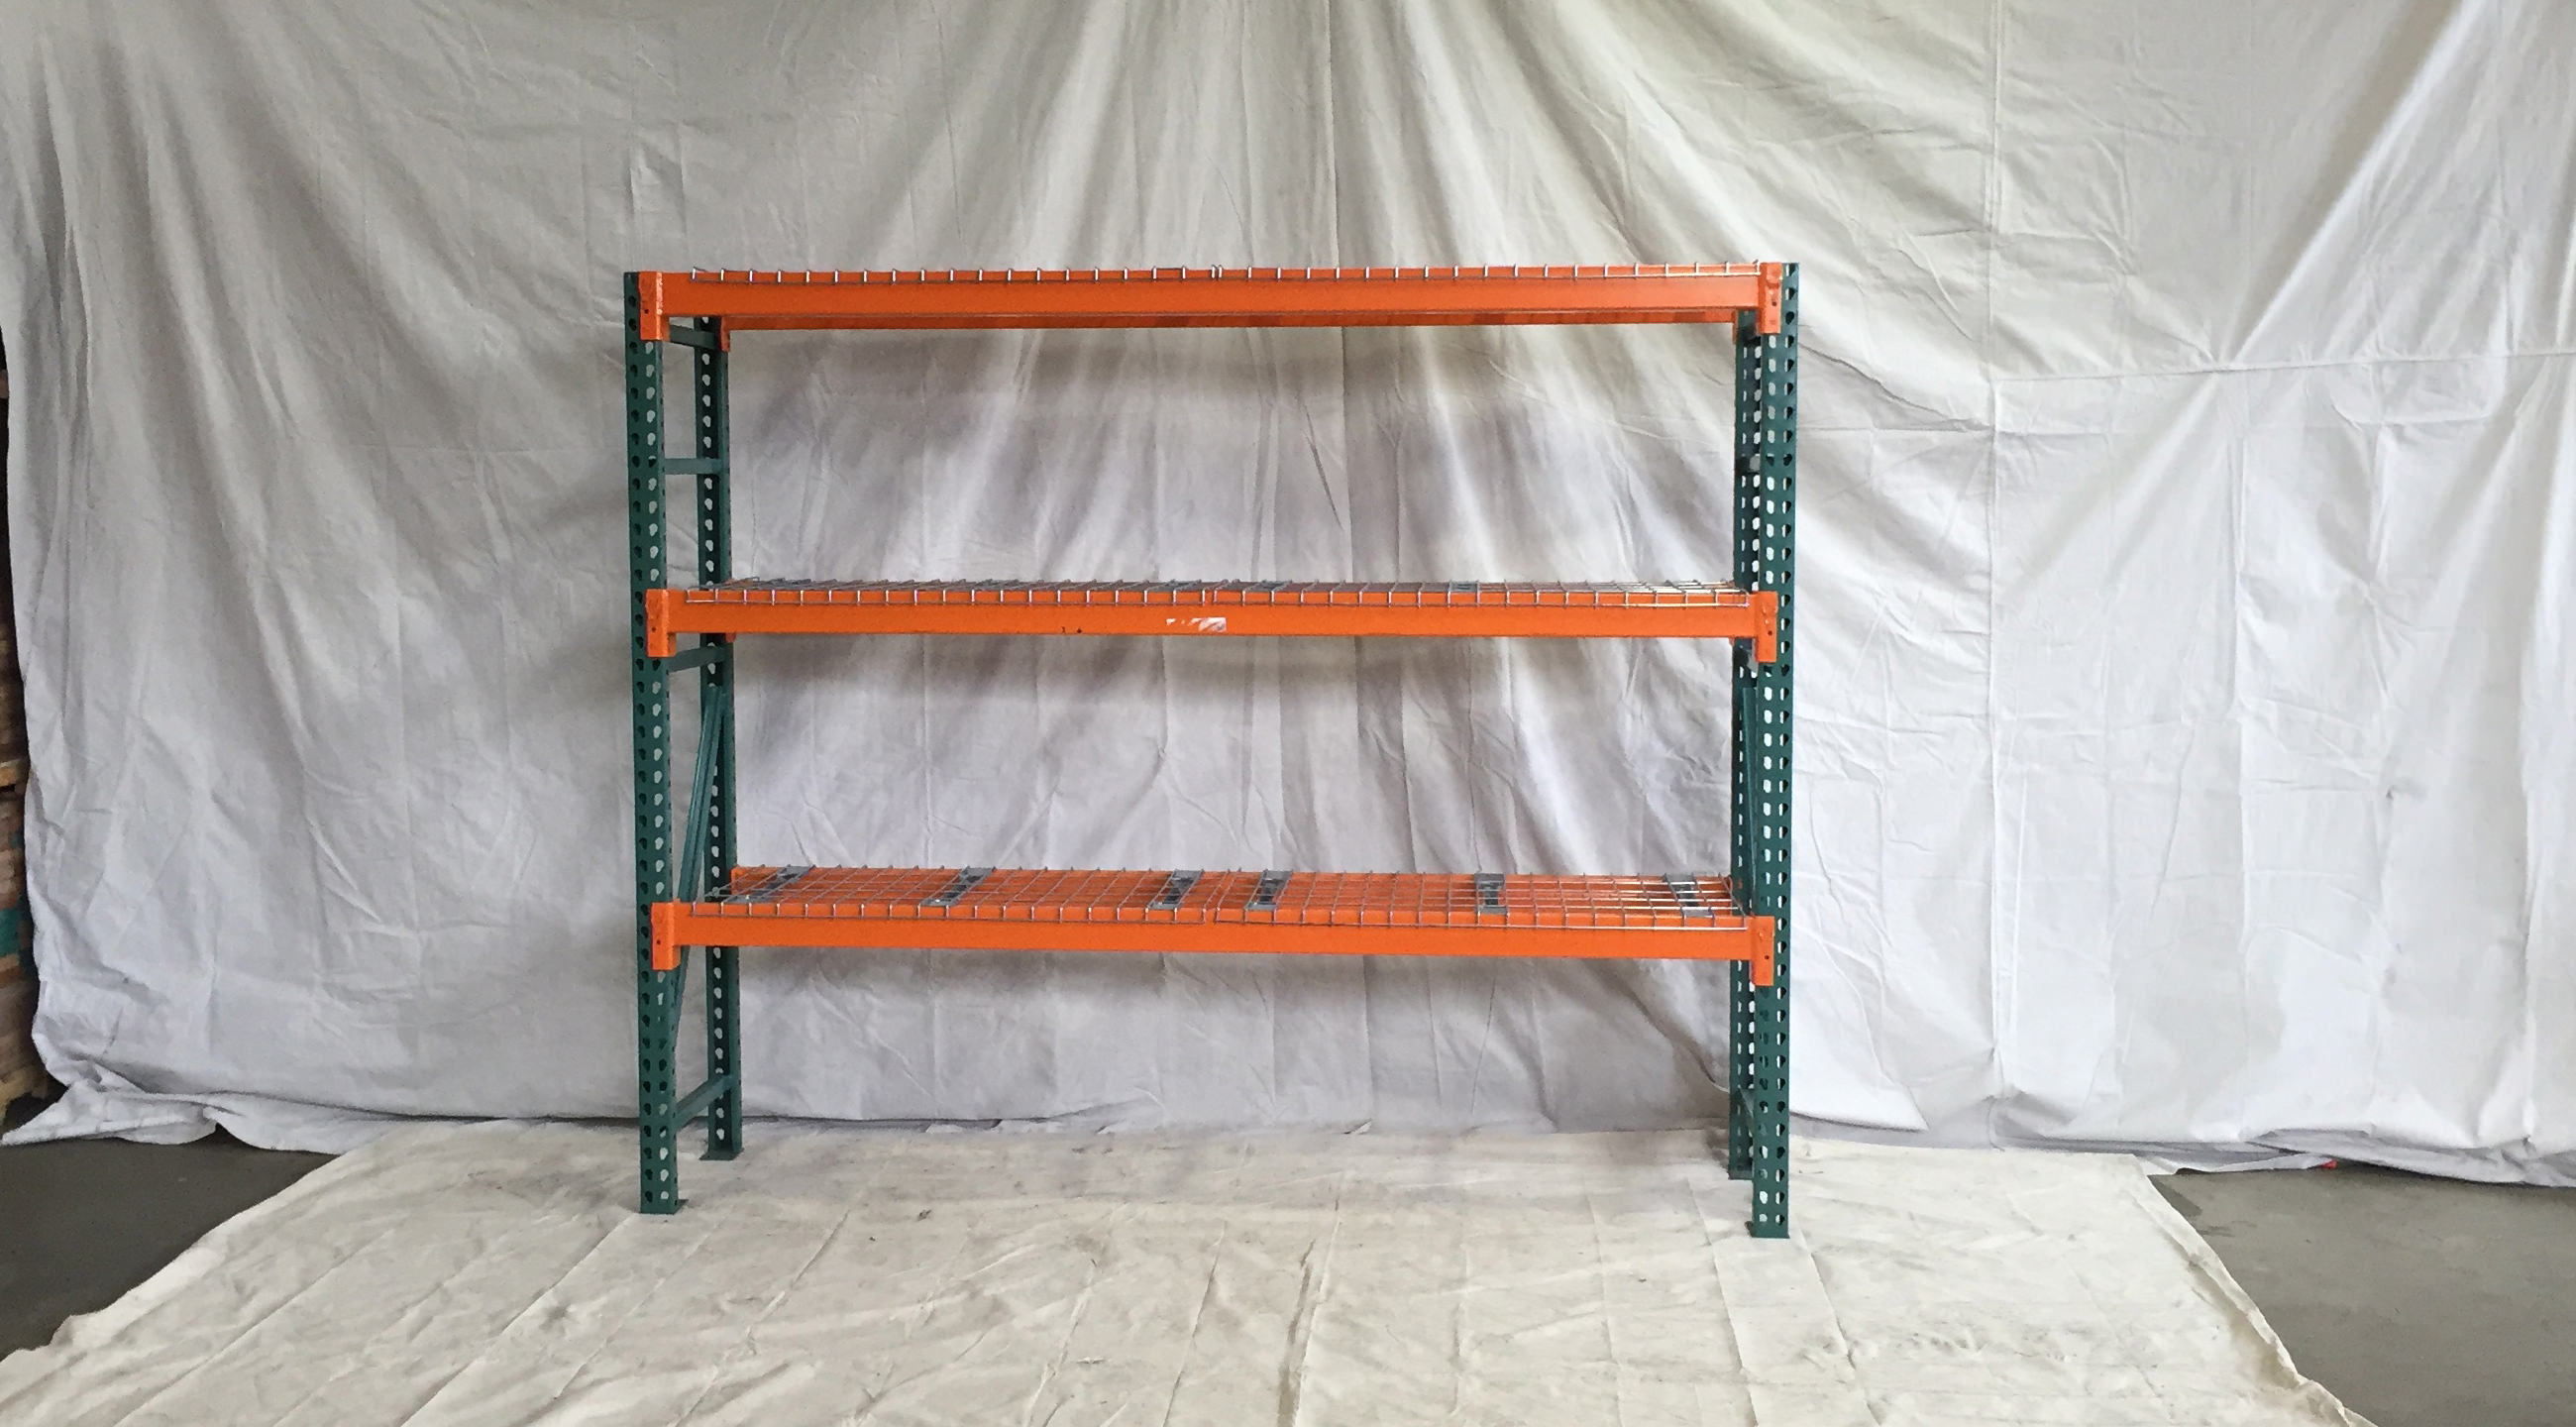 store starter unit d rack products palletrack heavy modern x nobasetier pallet h duty